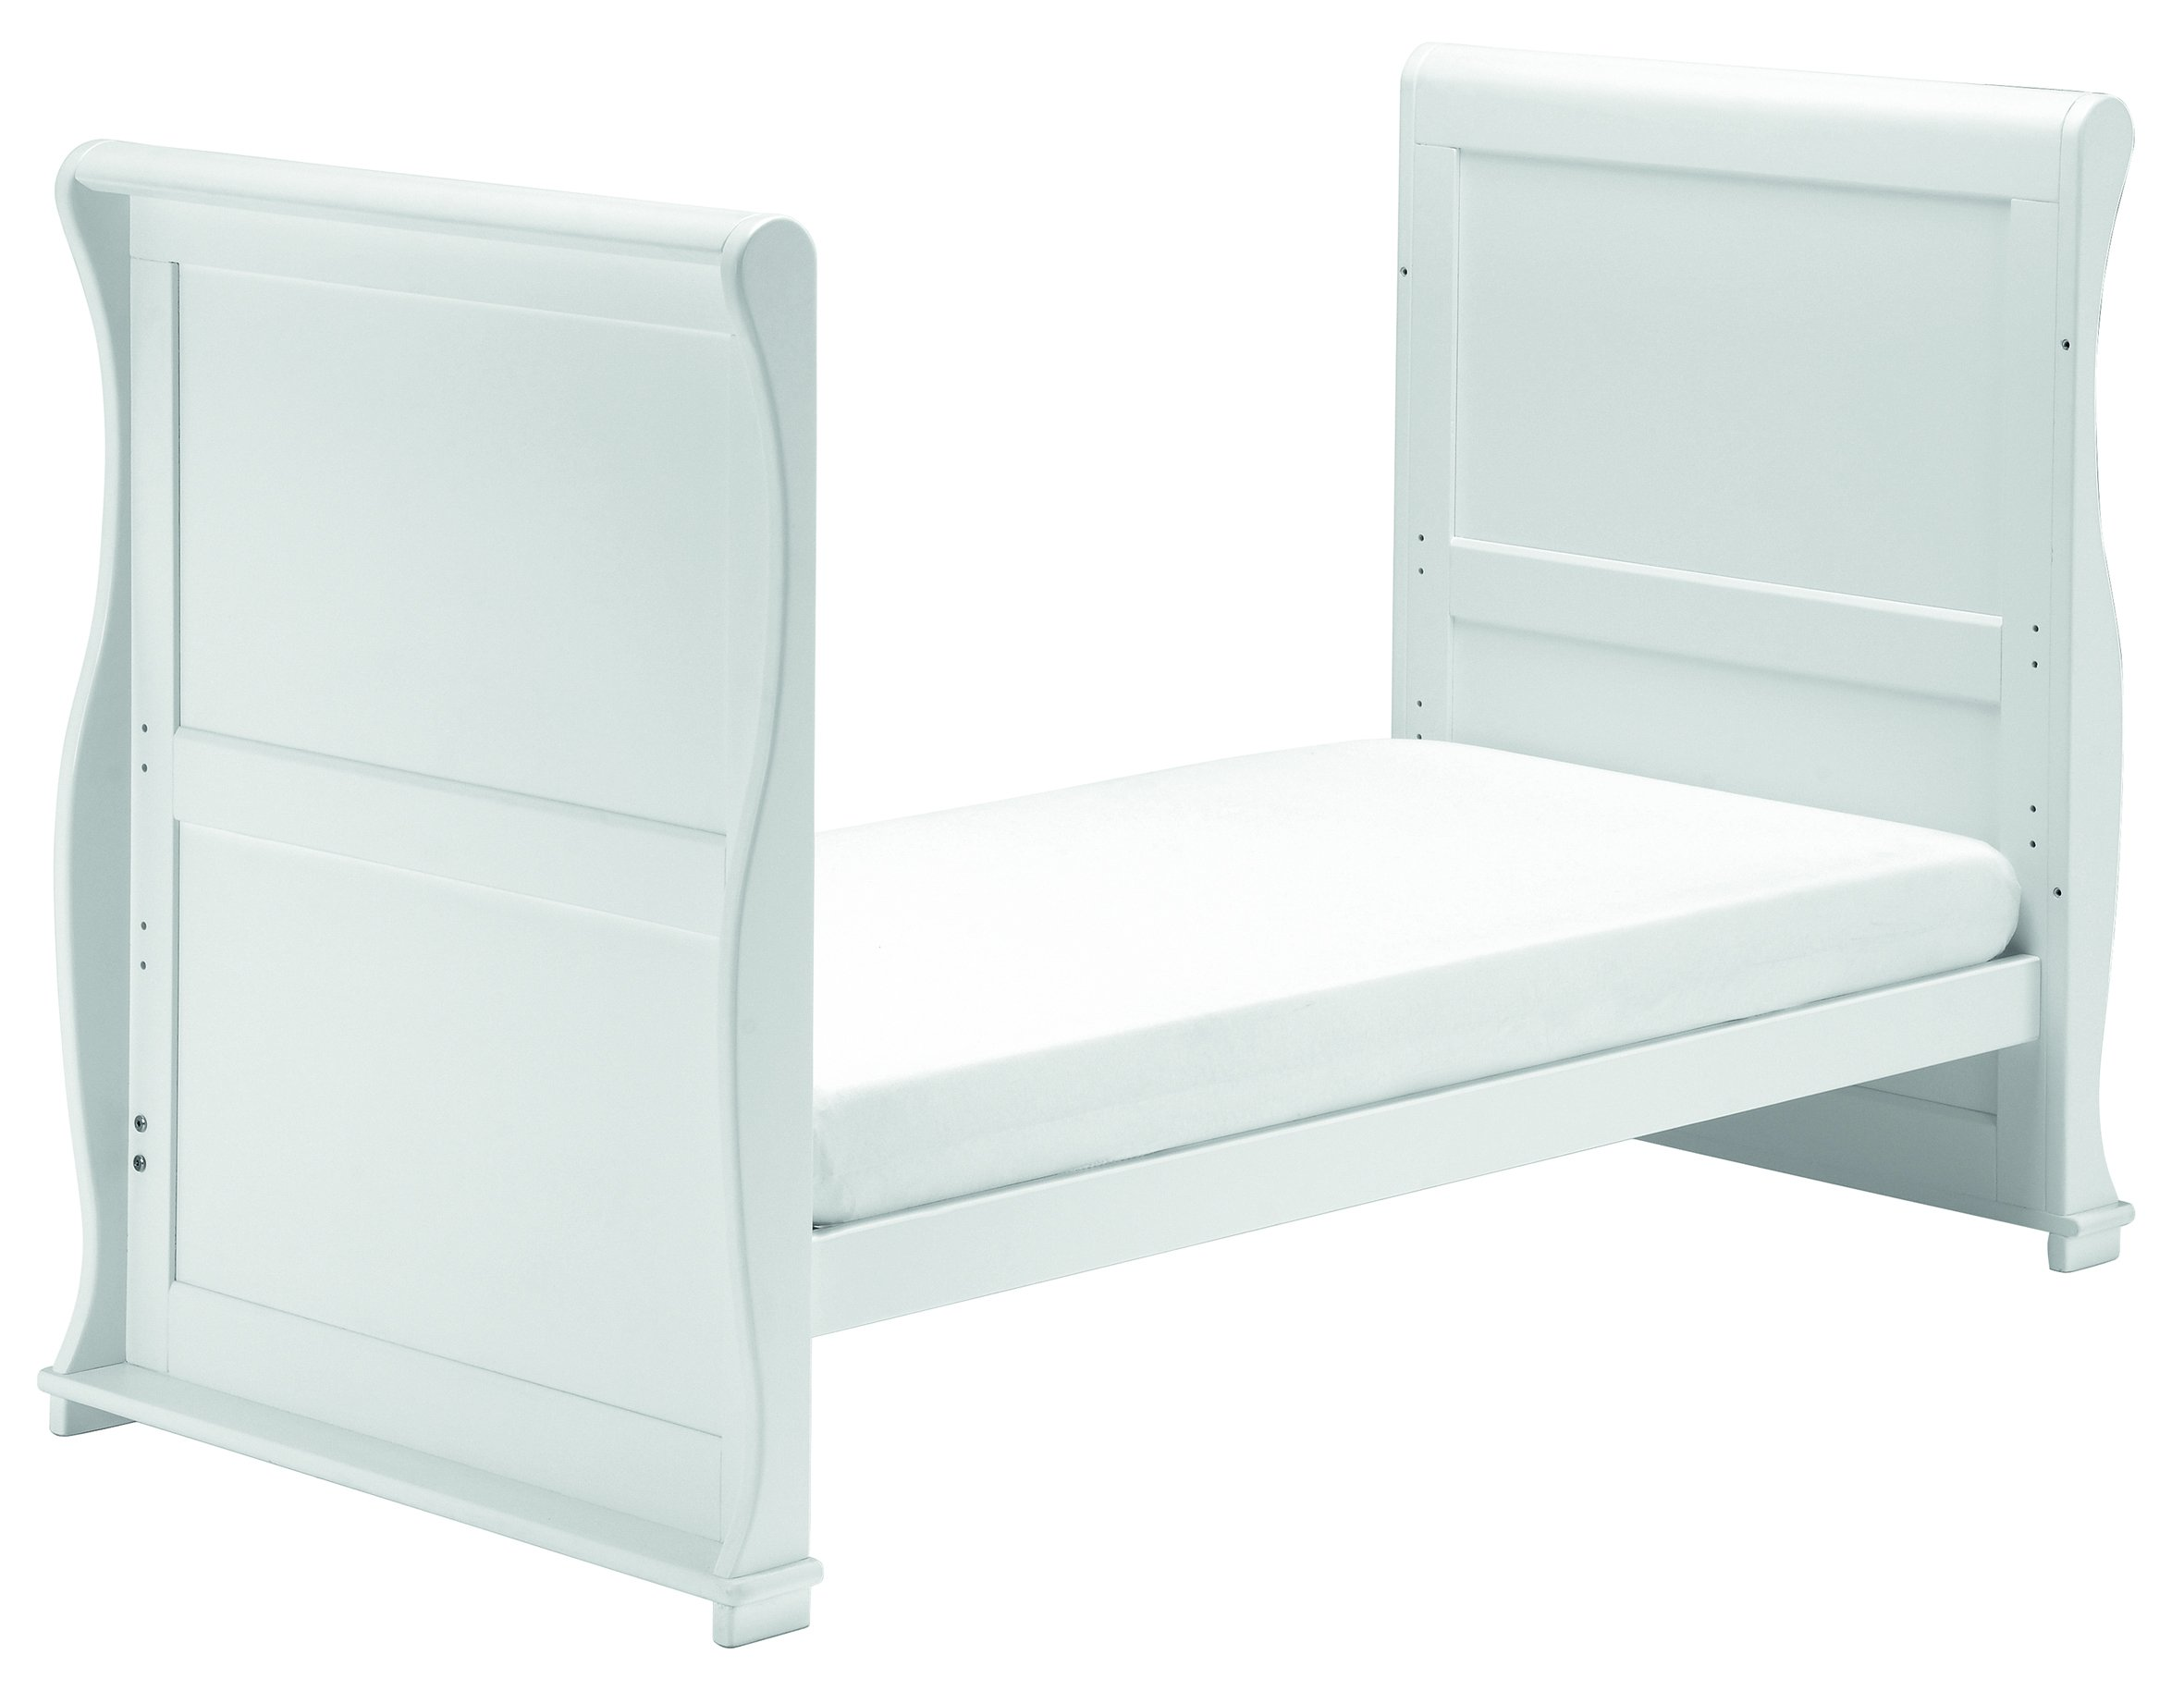 East Coast Nursery Alaska Sleigh Cotbed (White) East Coast Nursery Ltd 3 Base Heights 2 Fixed Sides Converts to day bed and toddler bed 3